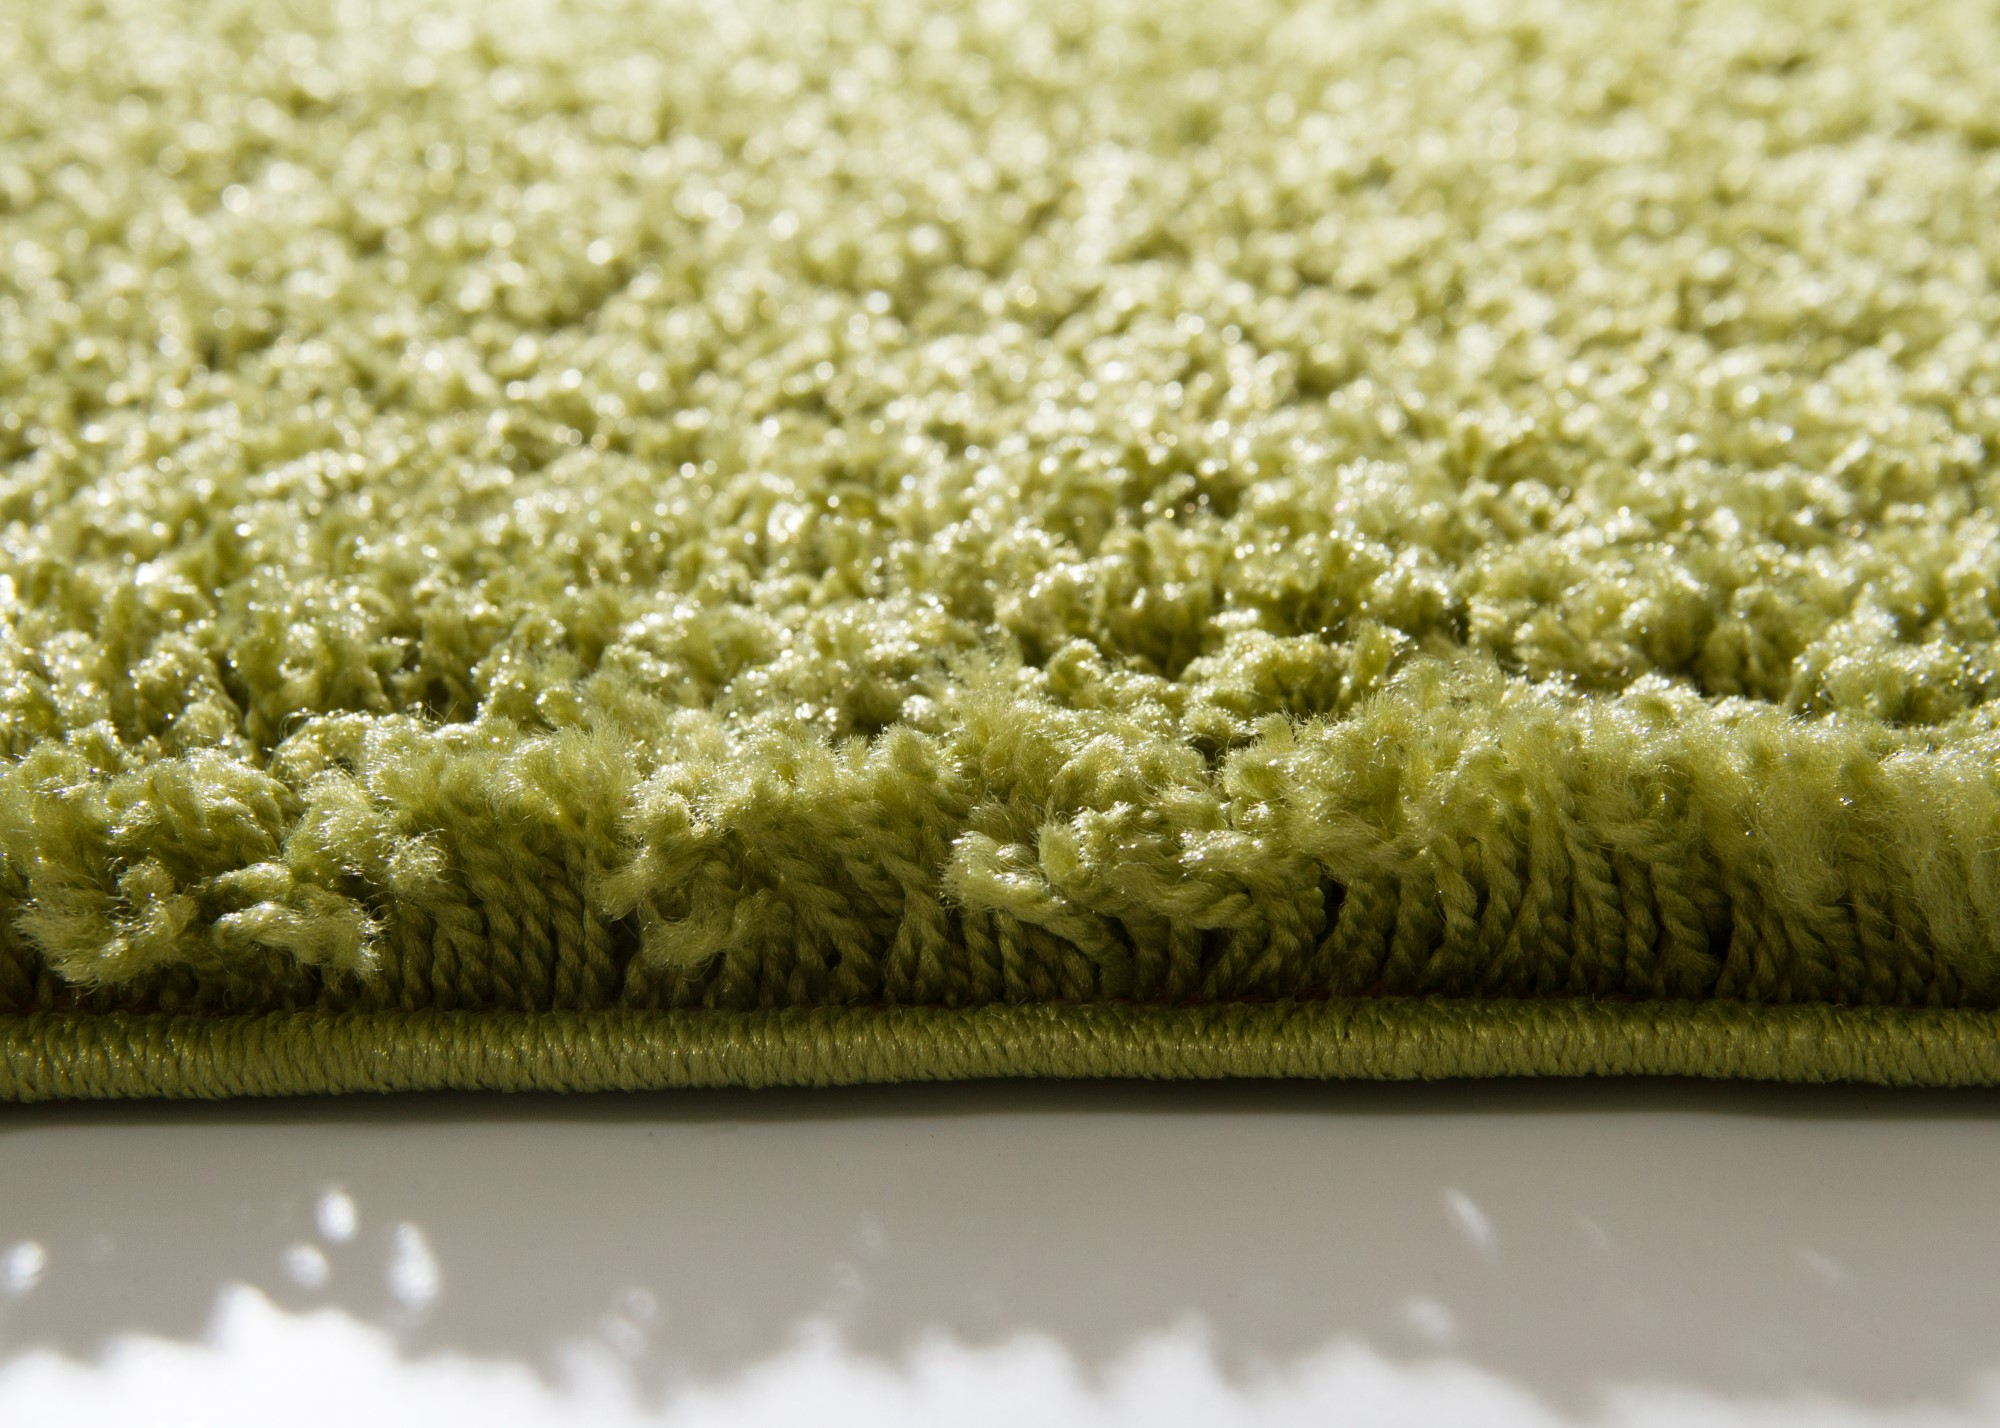 Shaggy rug happy soft pile small extra large new modern - Tappeti flokati ...